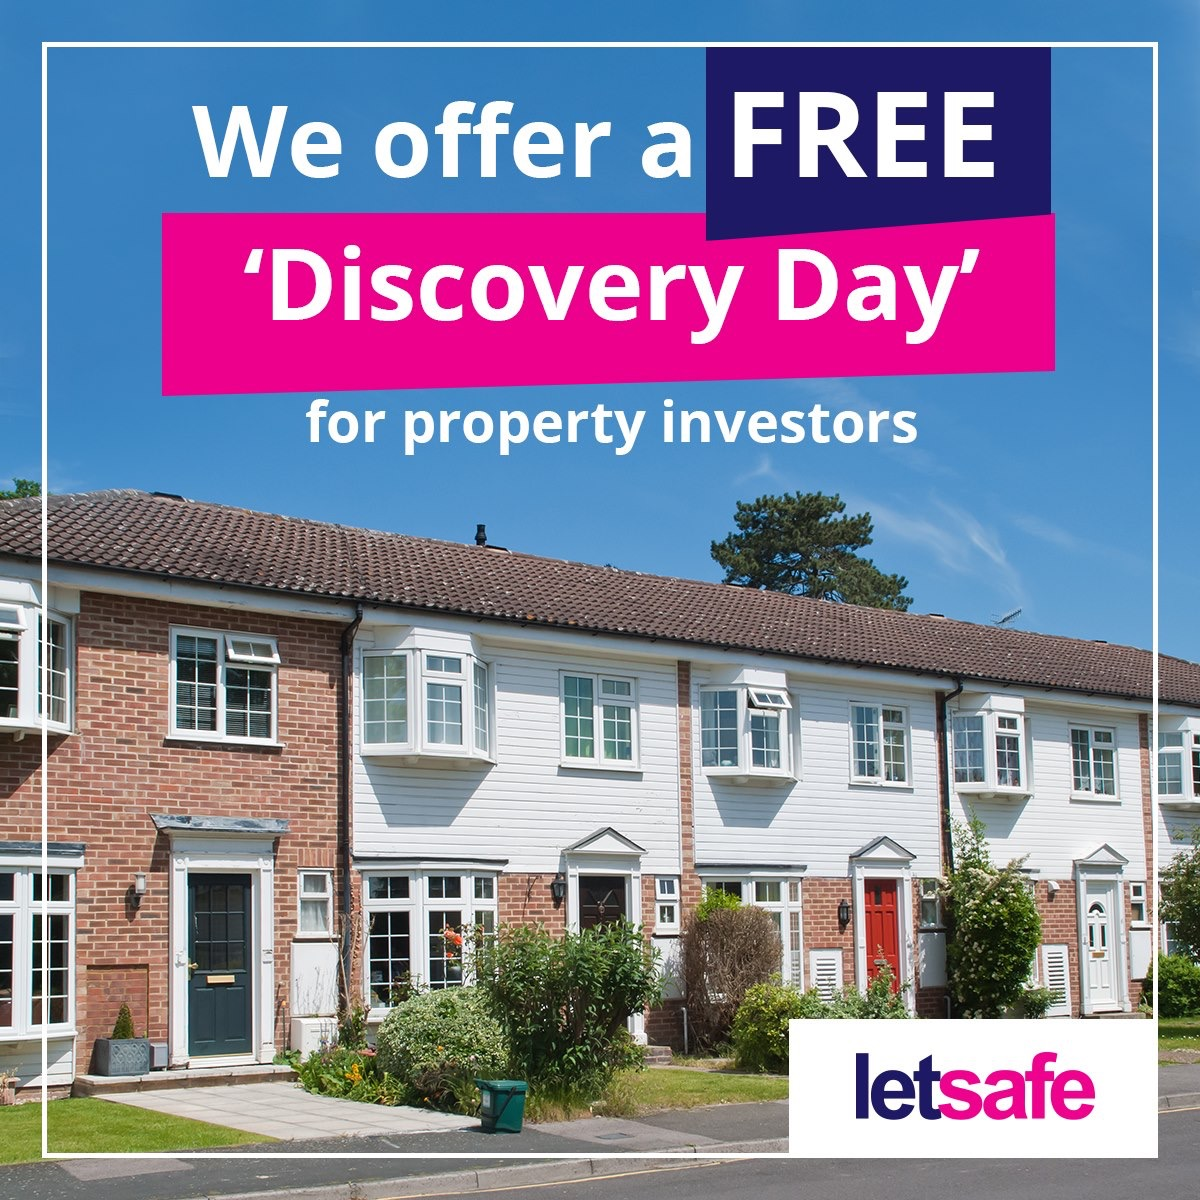 Book a Discovery Day